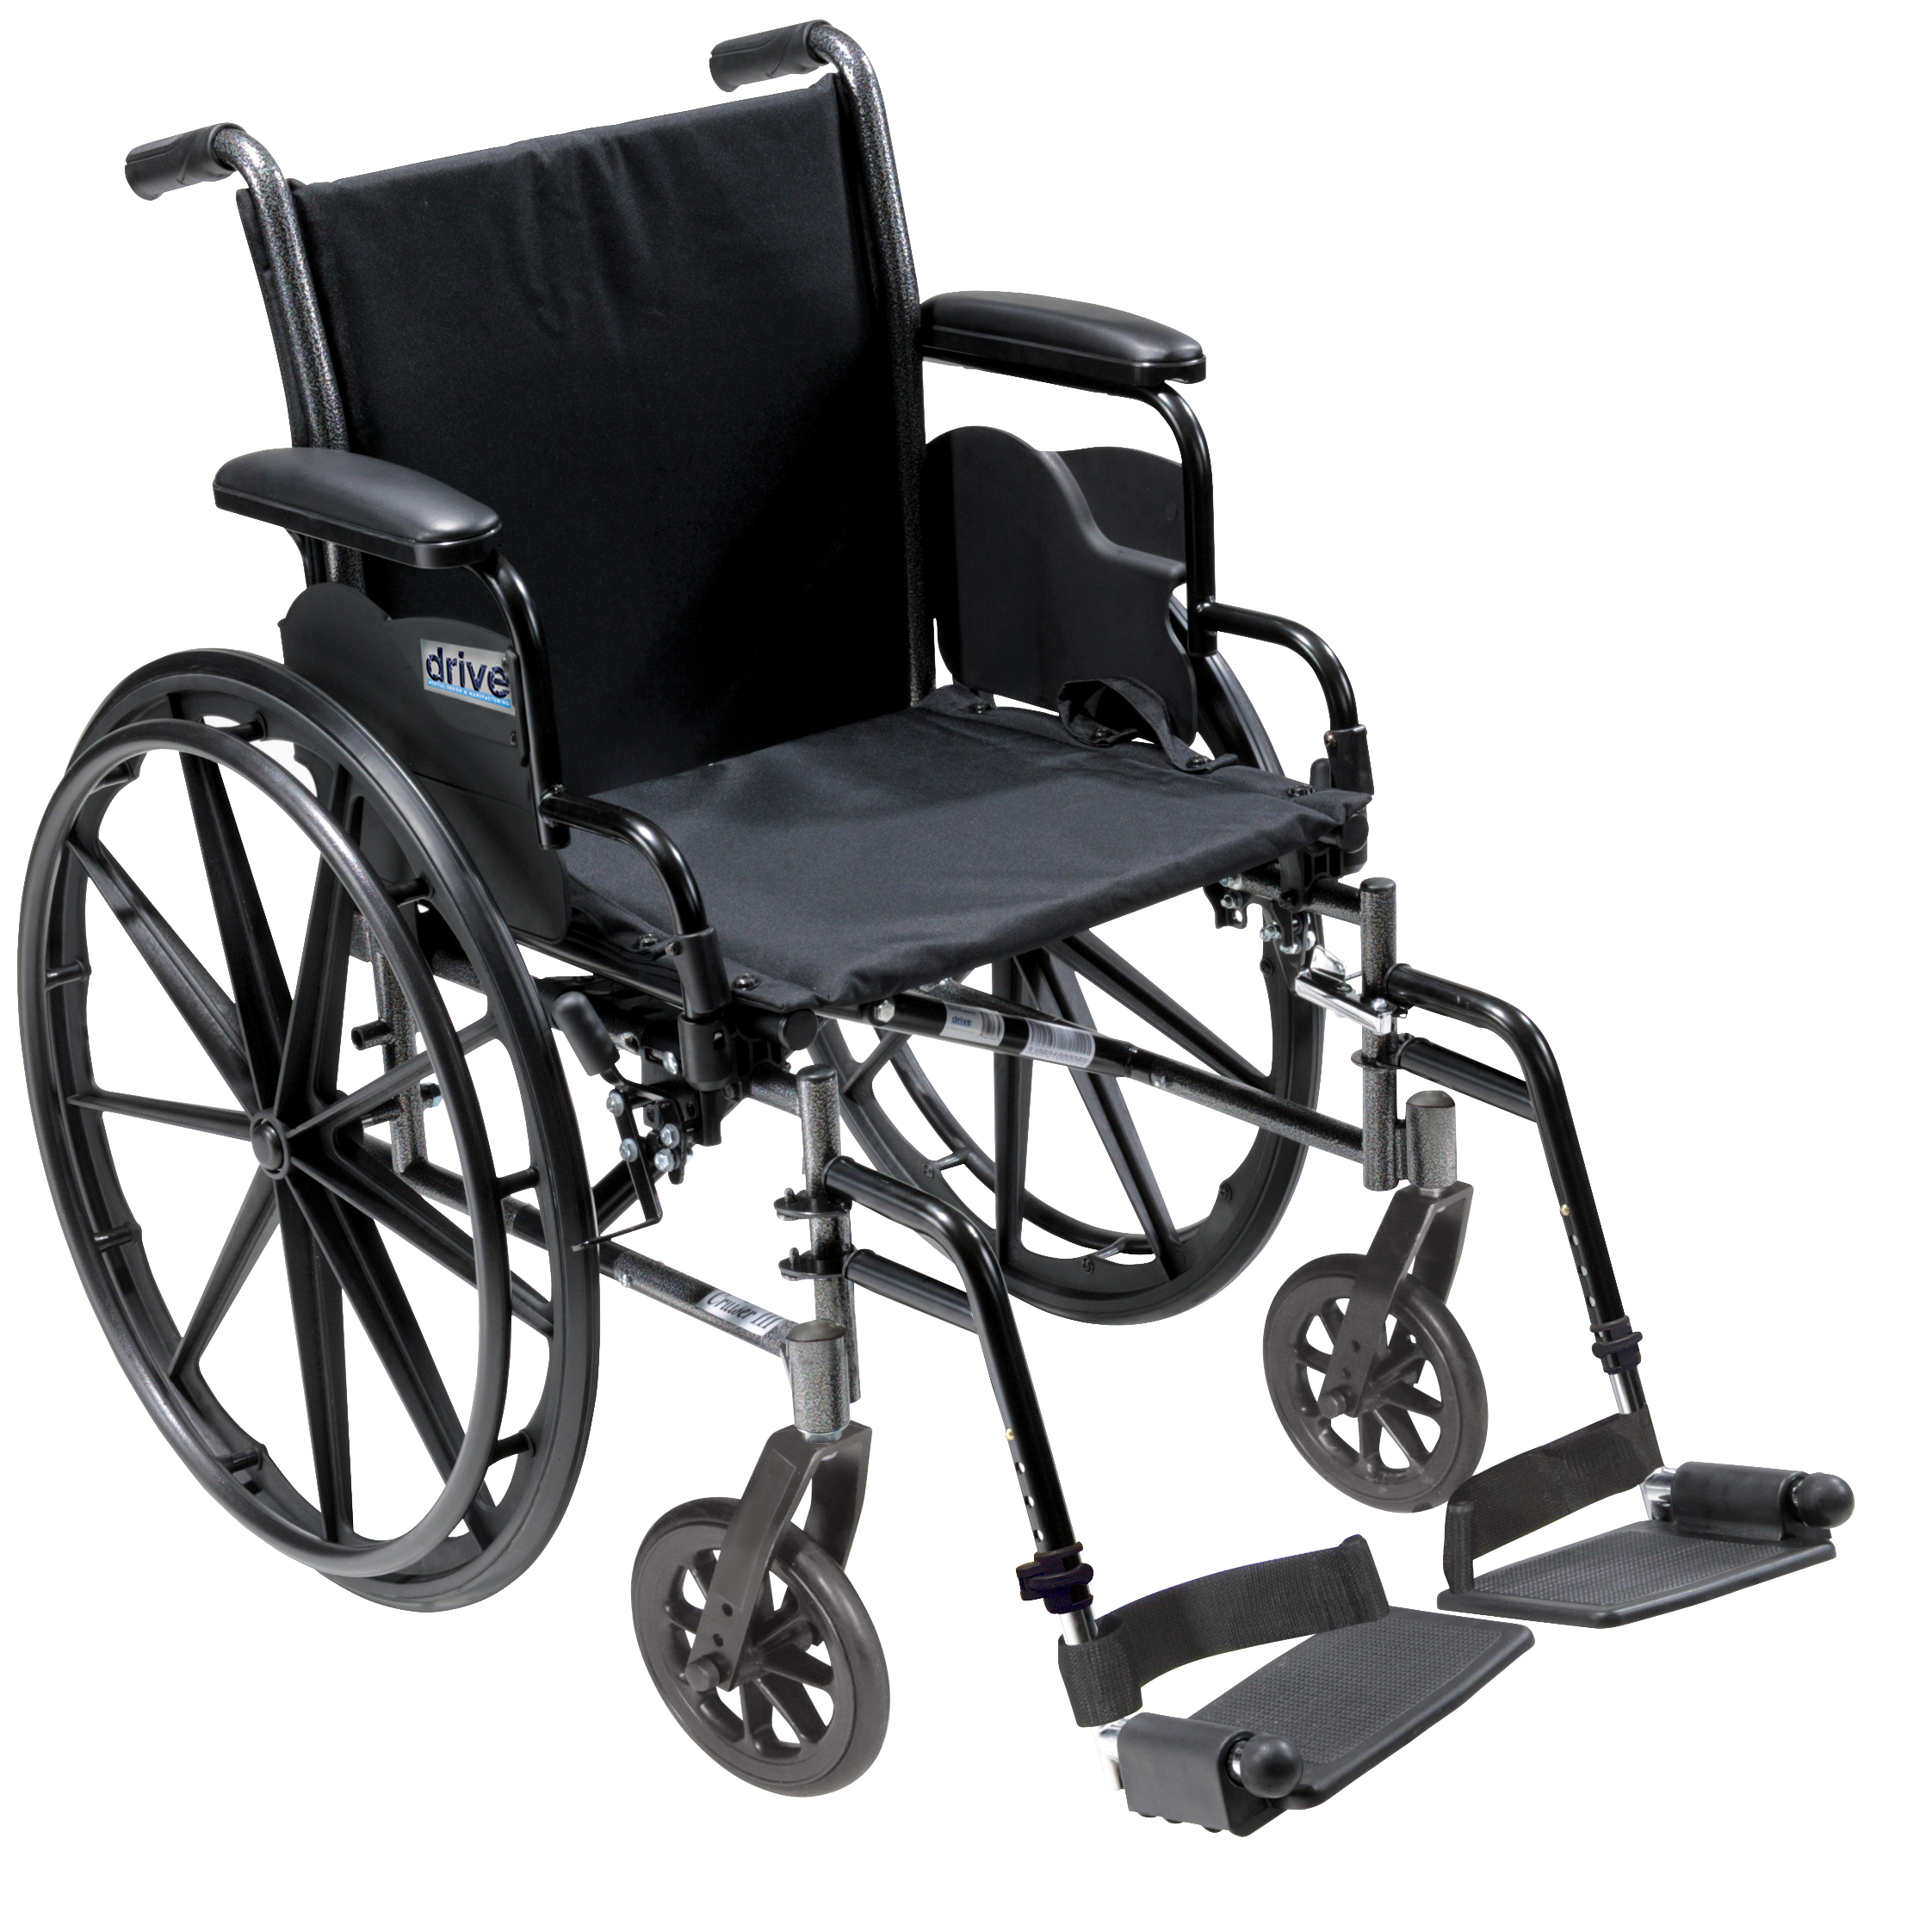 Drive Cruiser III Light Weight Wheelchair with Various Flip Back Arm Styles and Front Rigging Options